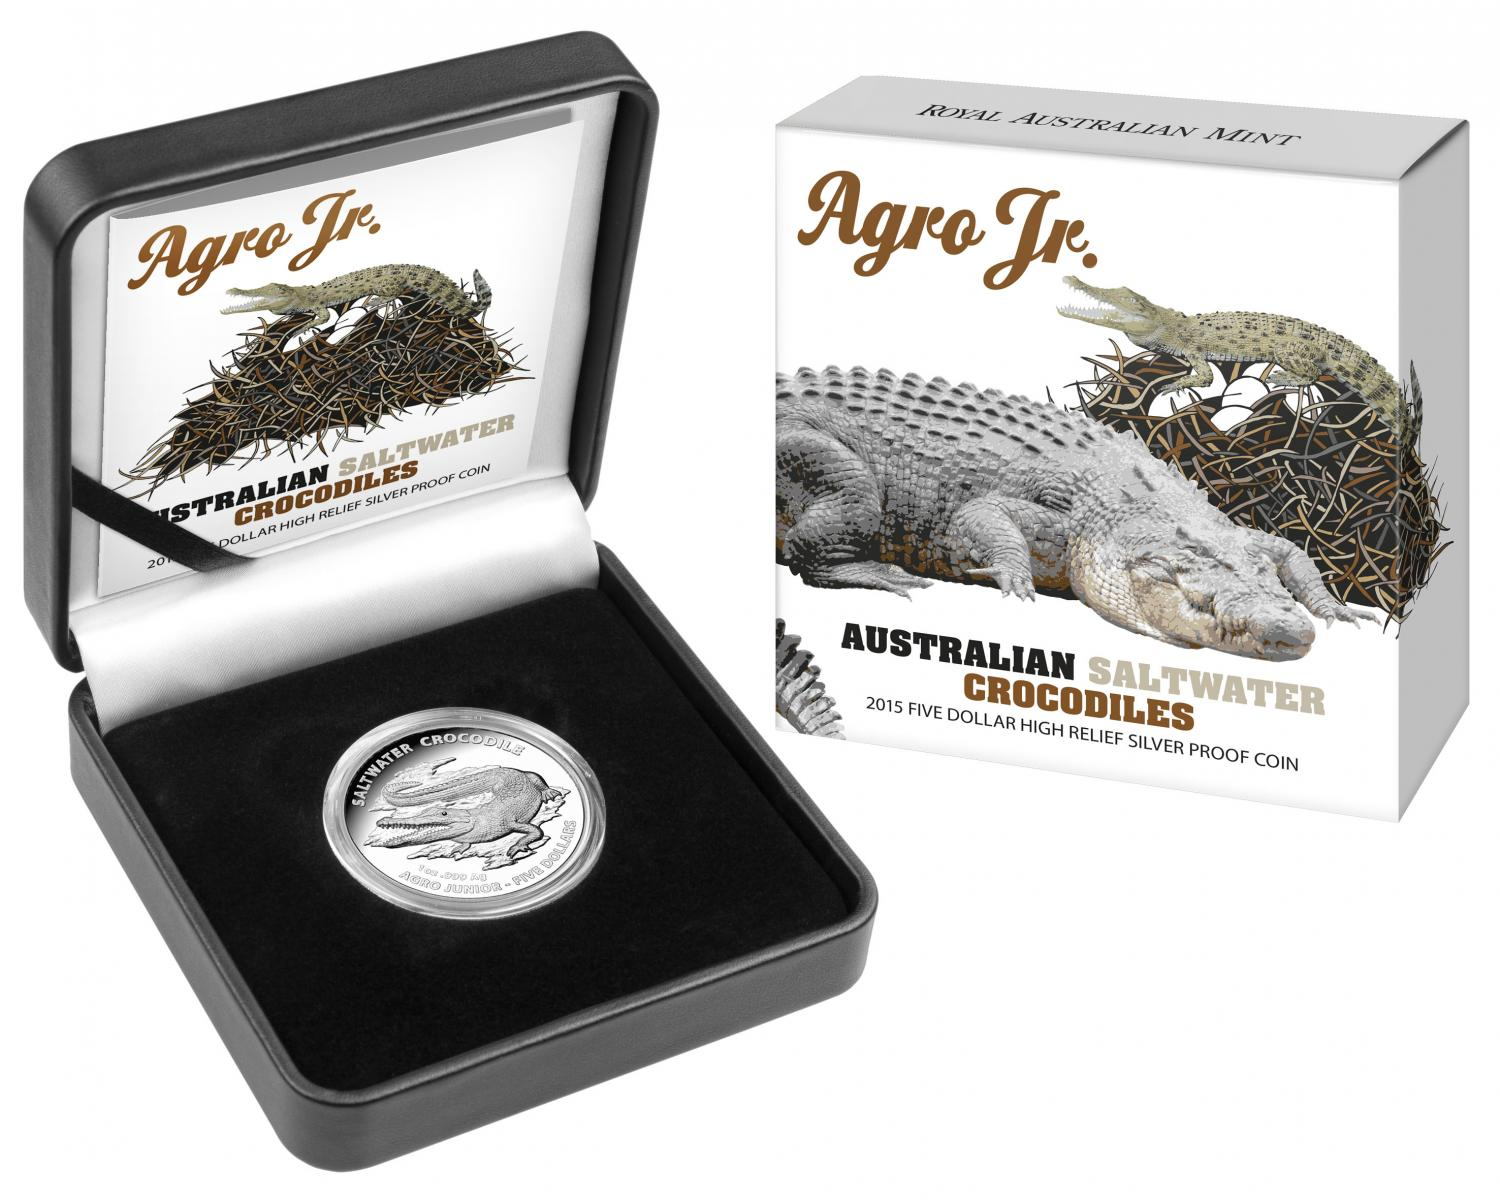 Thumbnail for 2015 1oz High Relief Silver Proof Australian Saltwater Crocodile - Agro Jr.